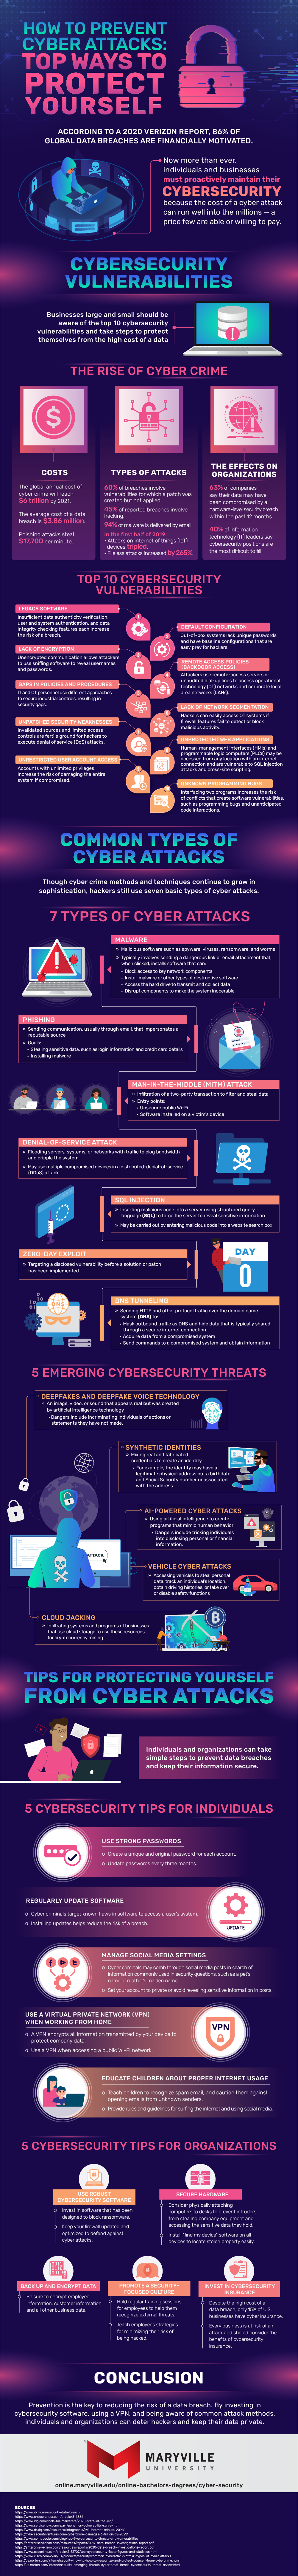 Cybersecurity statistics and information on how to prevent cyber attacks